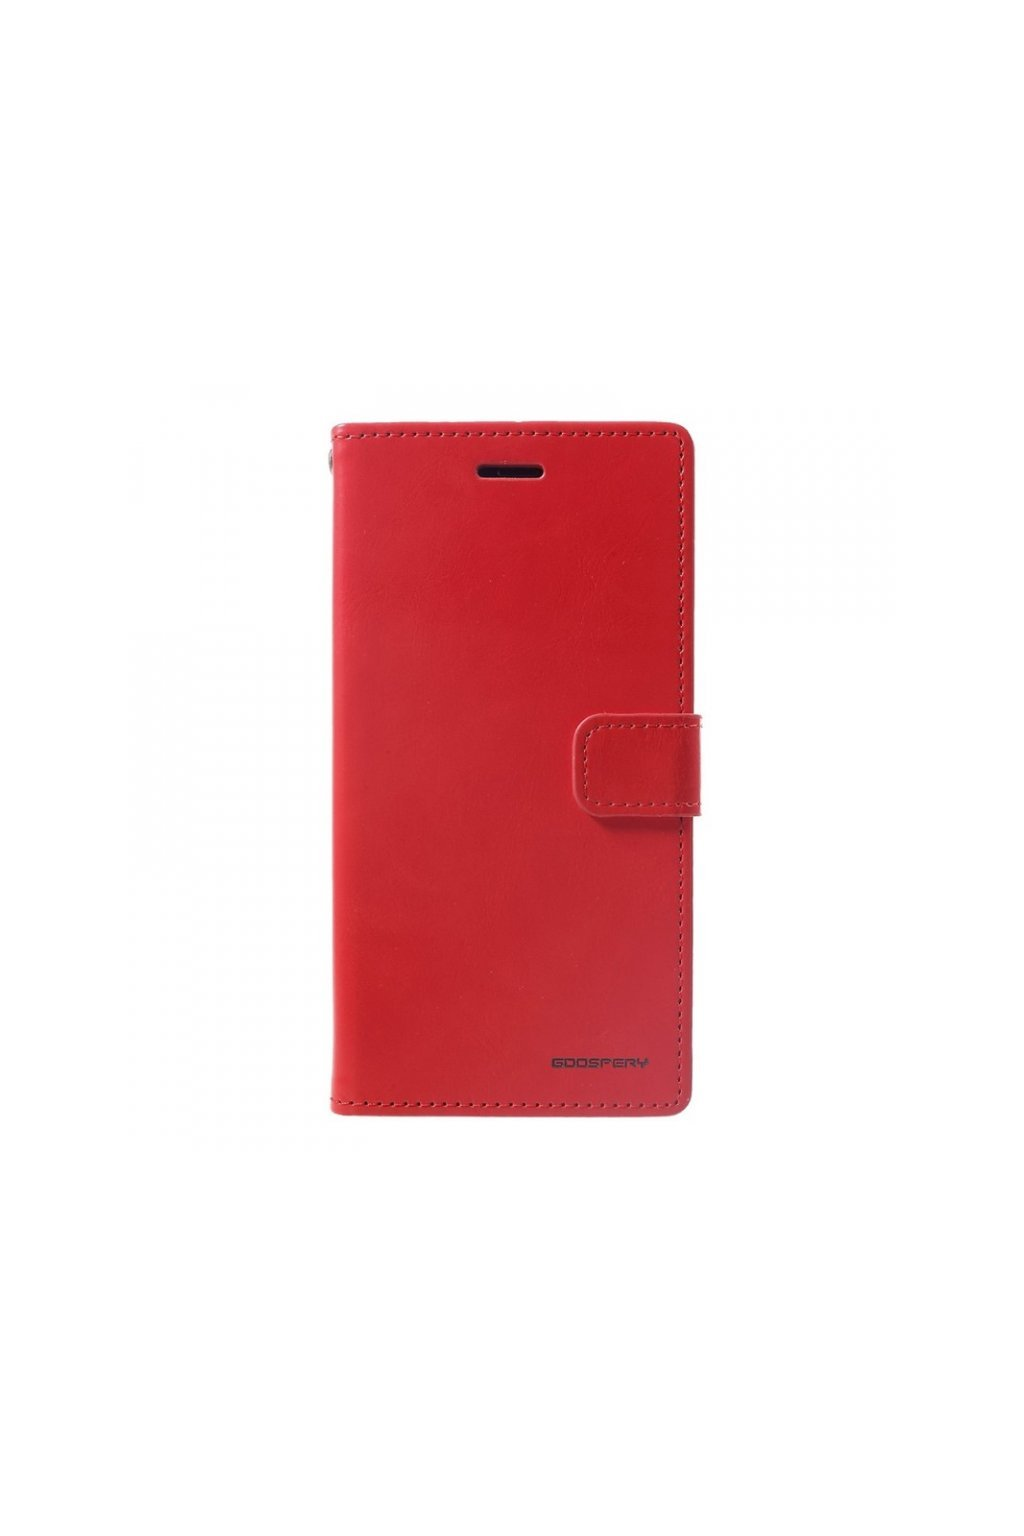 17099 pouzdro kryt pro iphone xr mercury bluemoon diary red